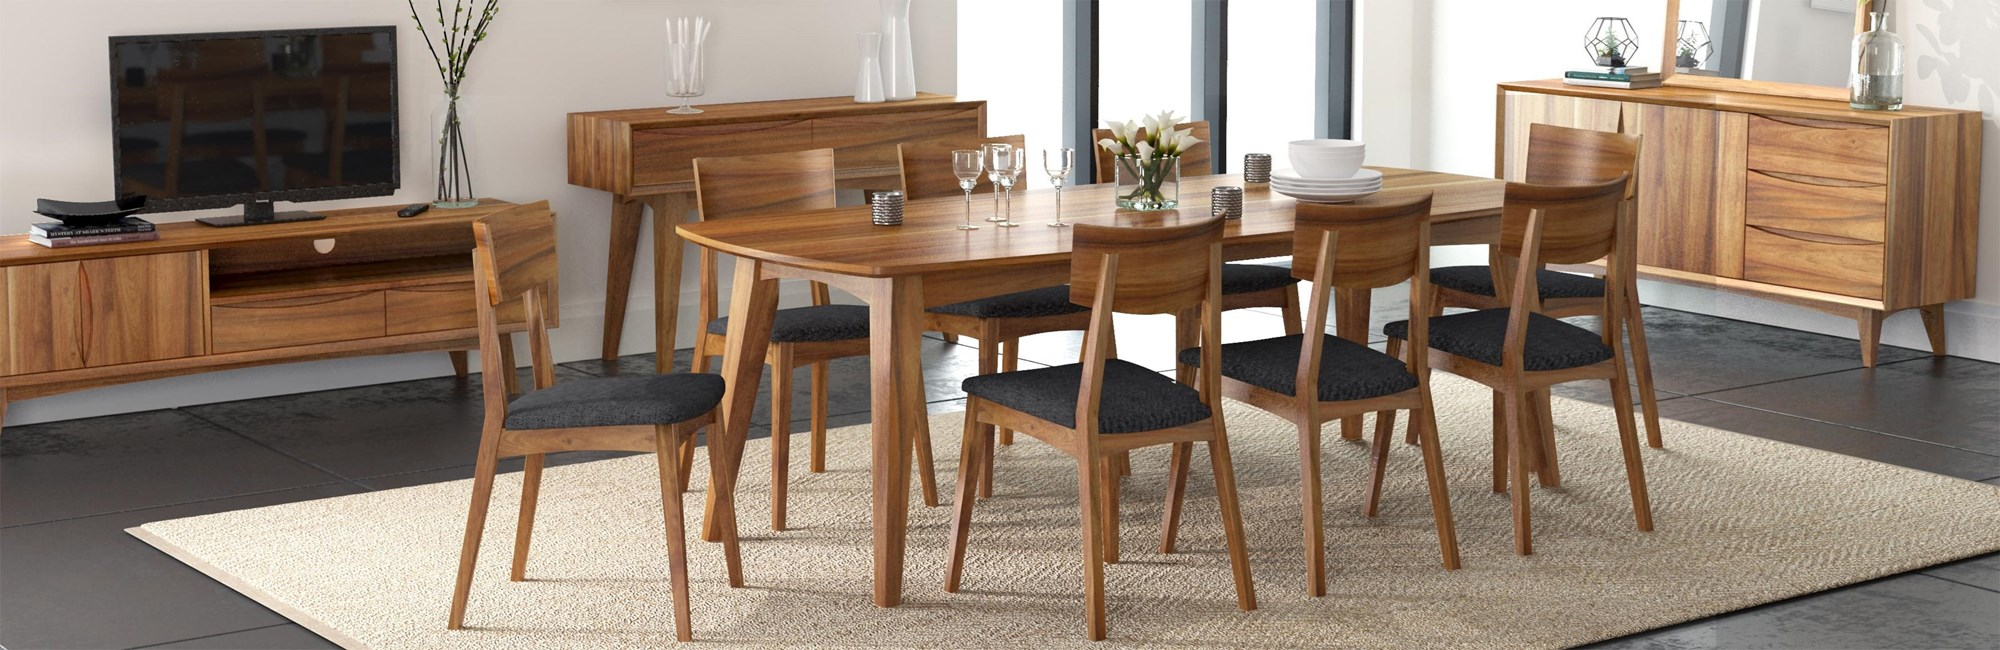 Beau Dining Room Furniture